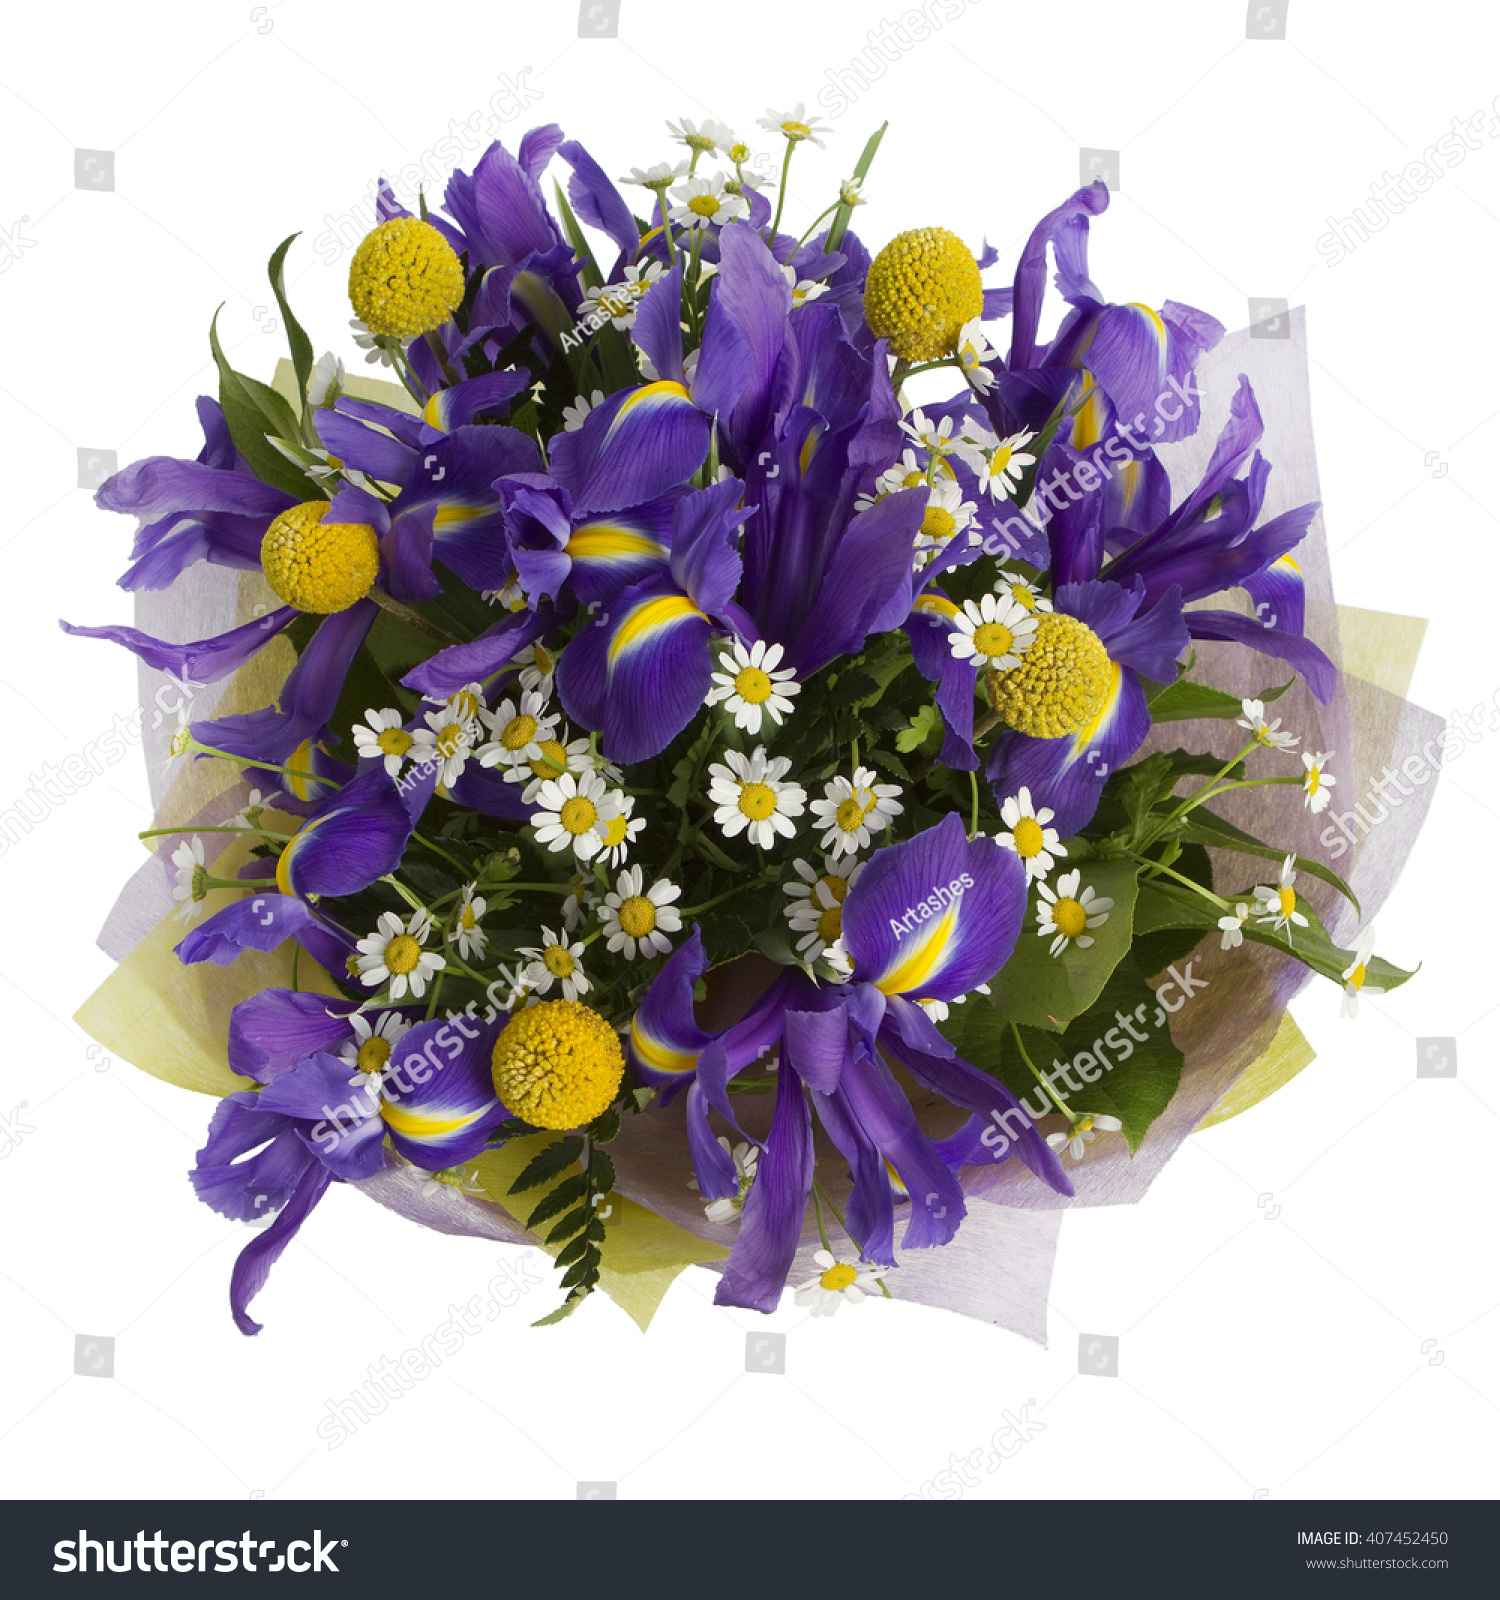 Colorful bouquet flowers stock photo edit now 407452450 shutterstock colorful bouquet of flowers izmirmasajfo